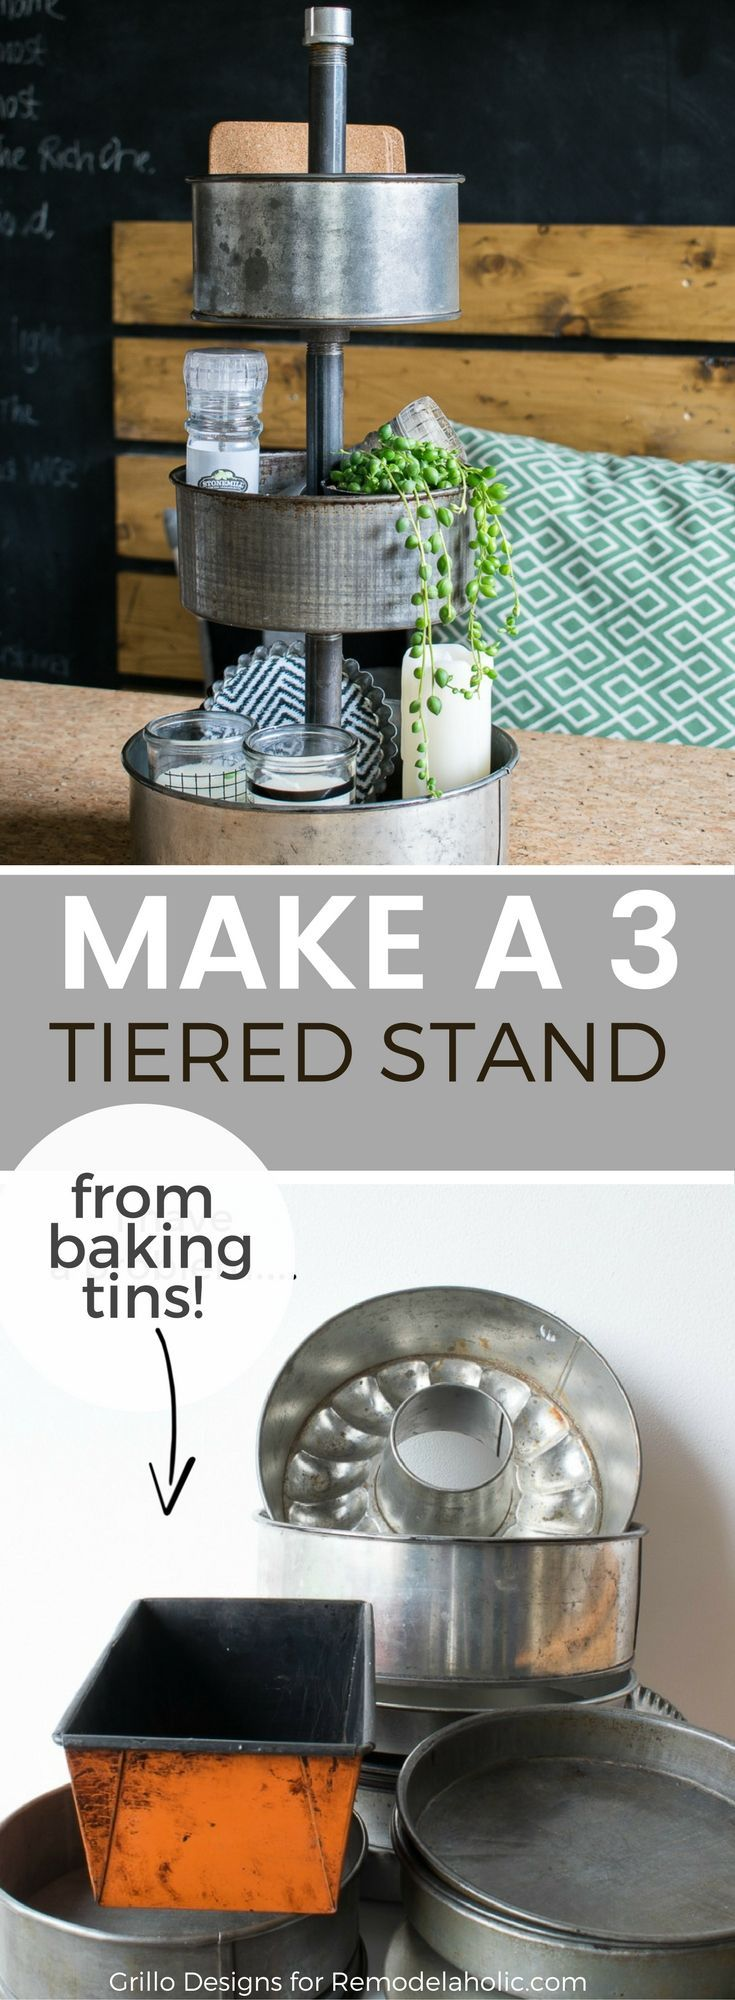 Three tiered standsare all the rage right now - especially metal industrial style trays that rotate . .. like this one! Learn how I made it over on Remodelaholic!